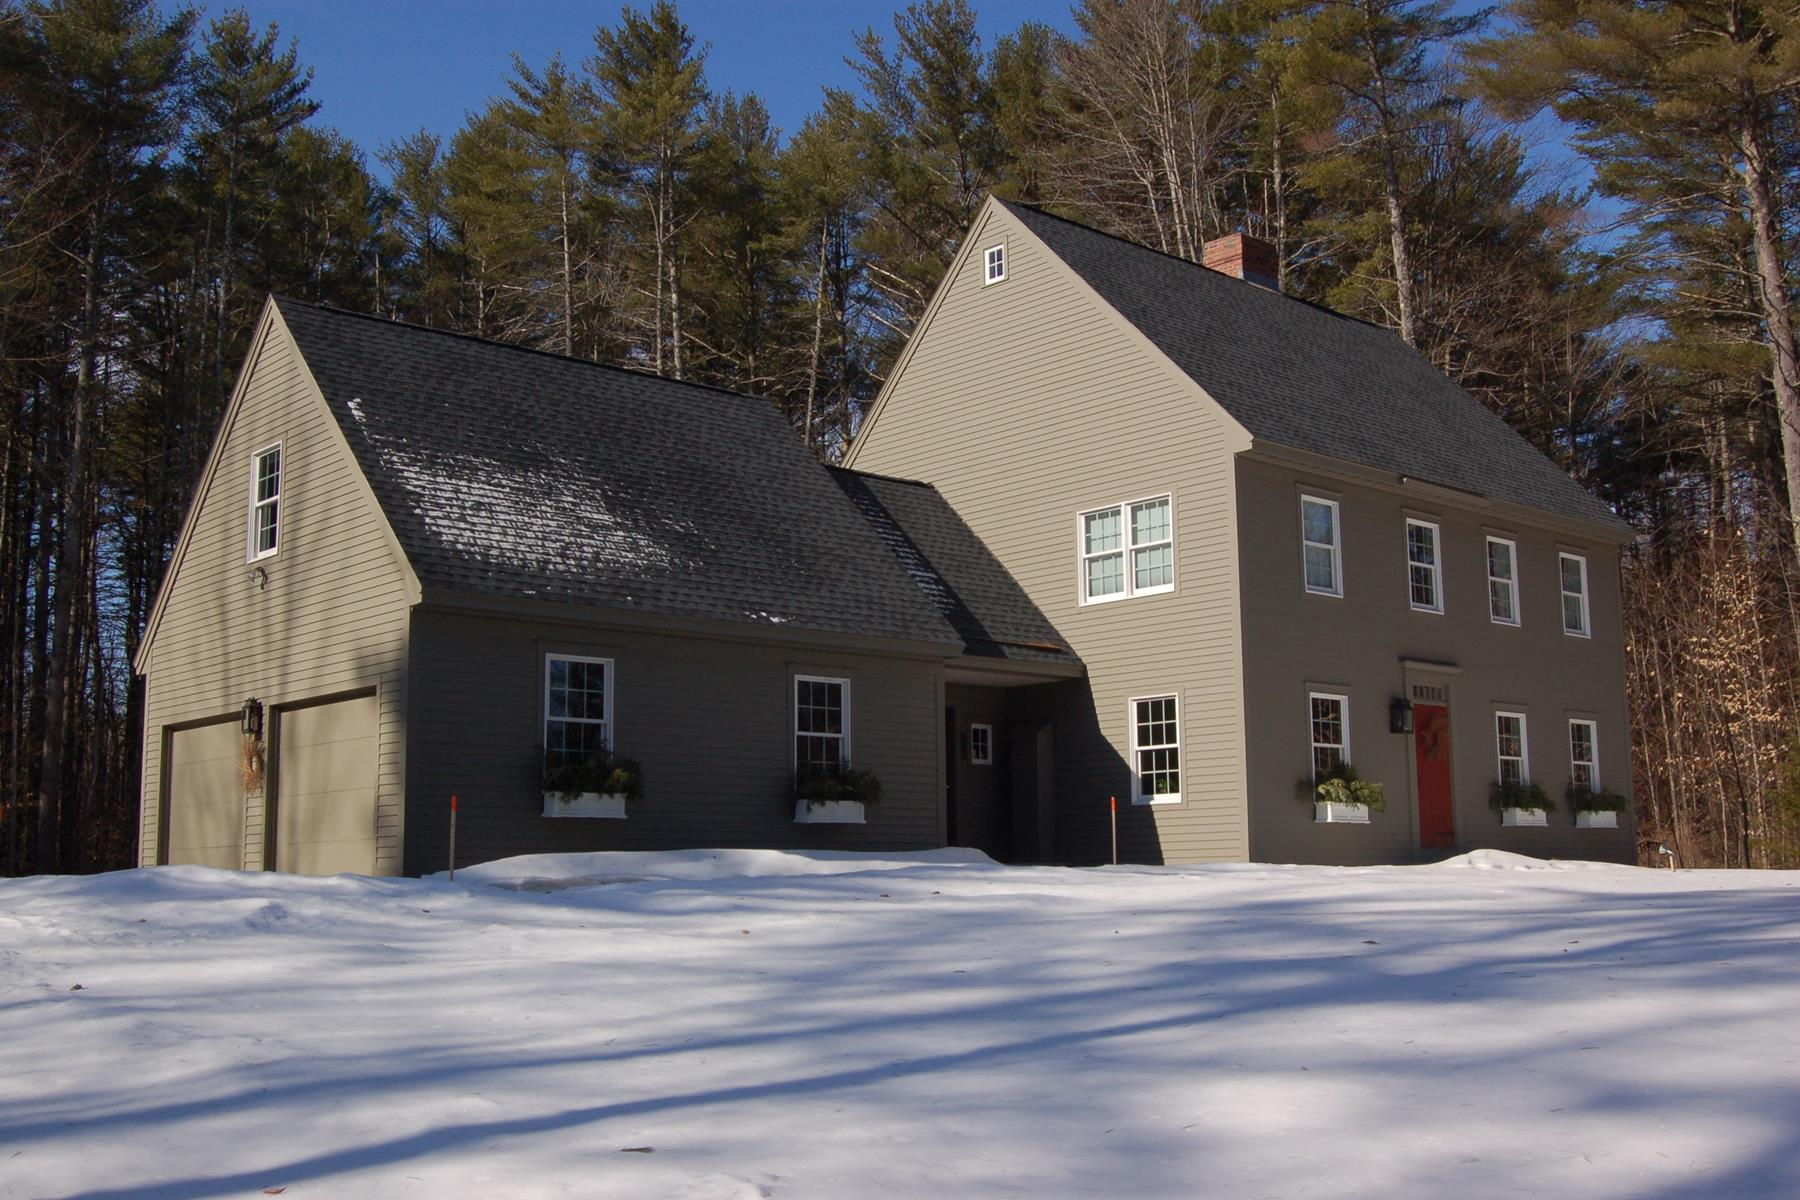 Single Family Home for Sale at 146 Wilder Lane, New London 146 Wilder Ln New London, New Hampshire 03257 United States